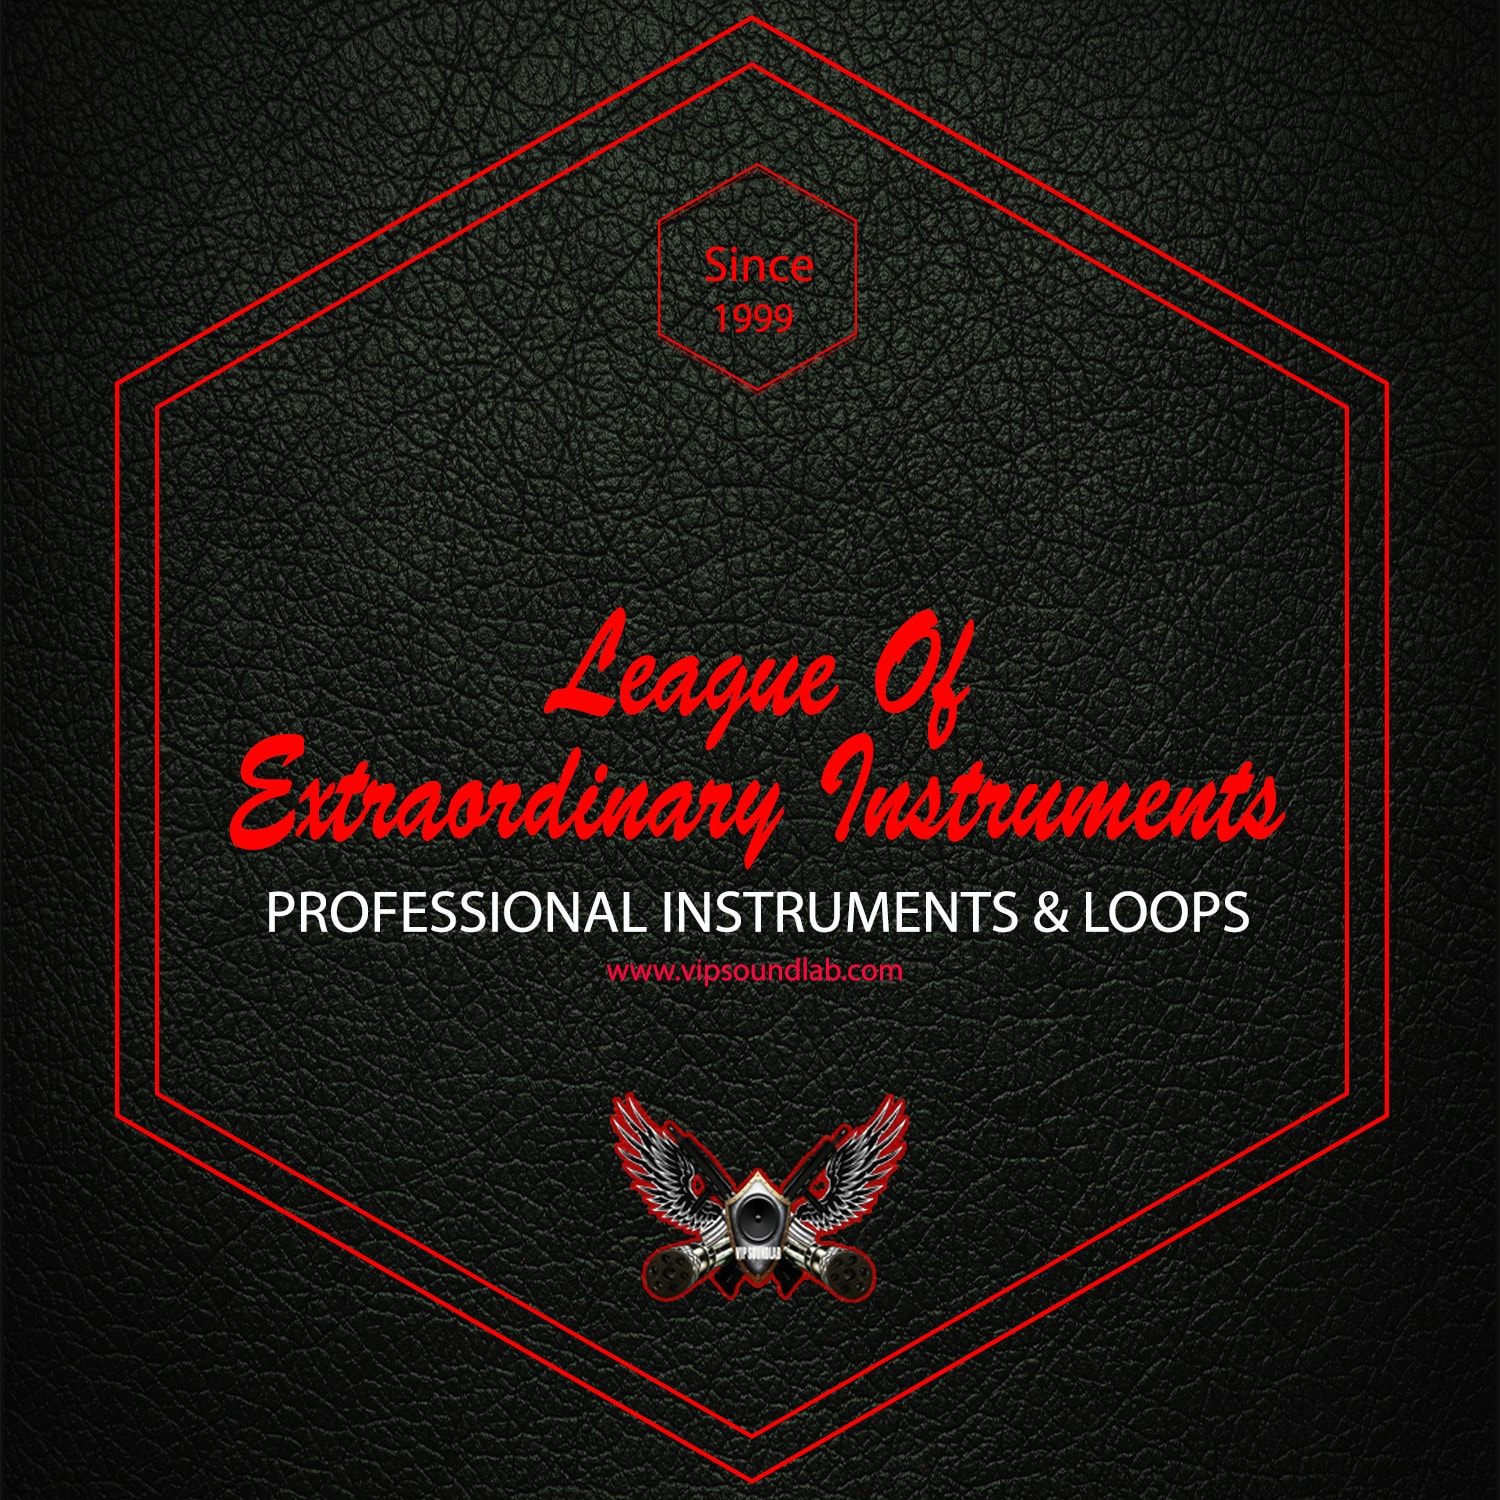 VIP SOUNDLAB League Of Extraordinary Instruments